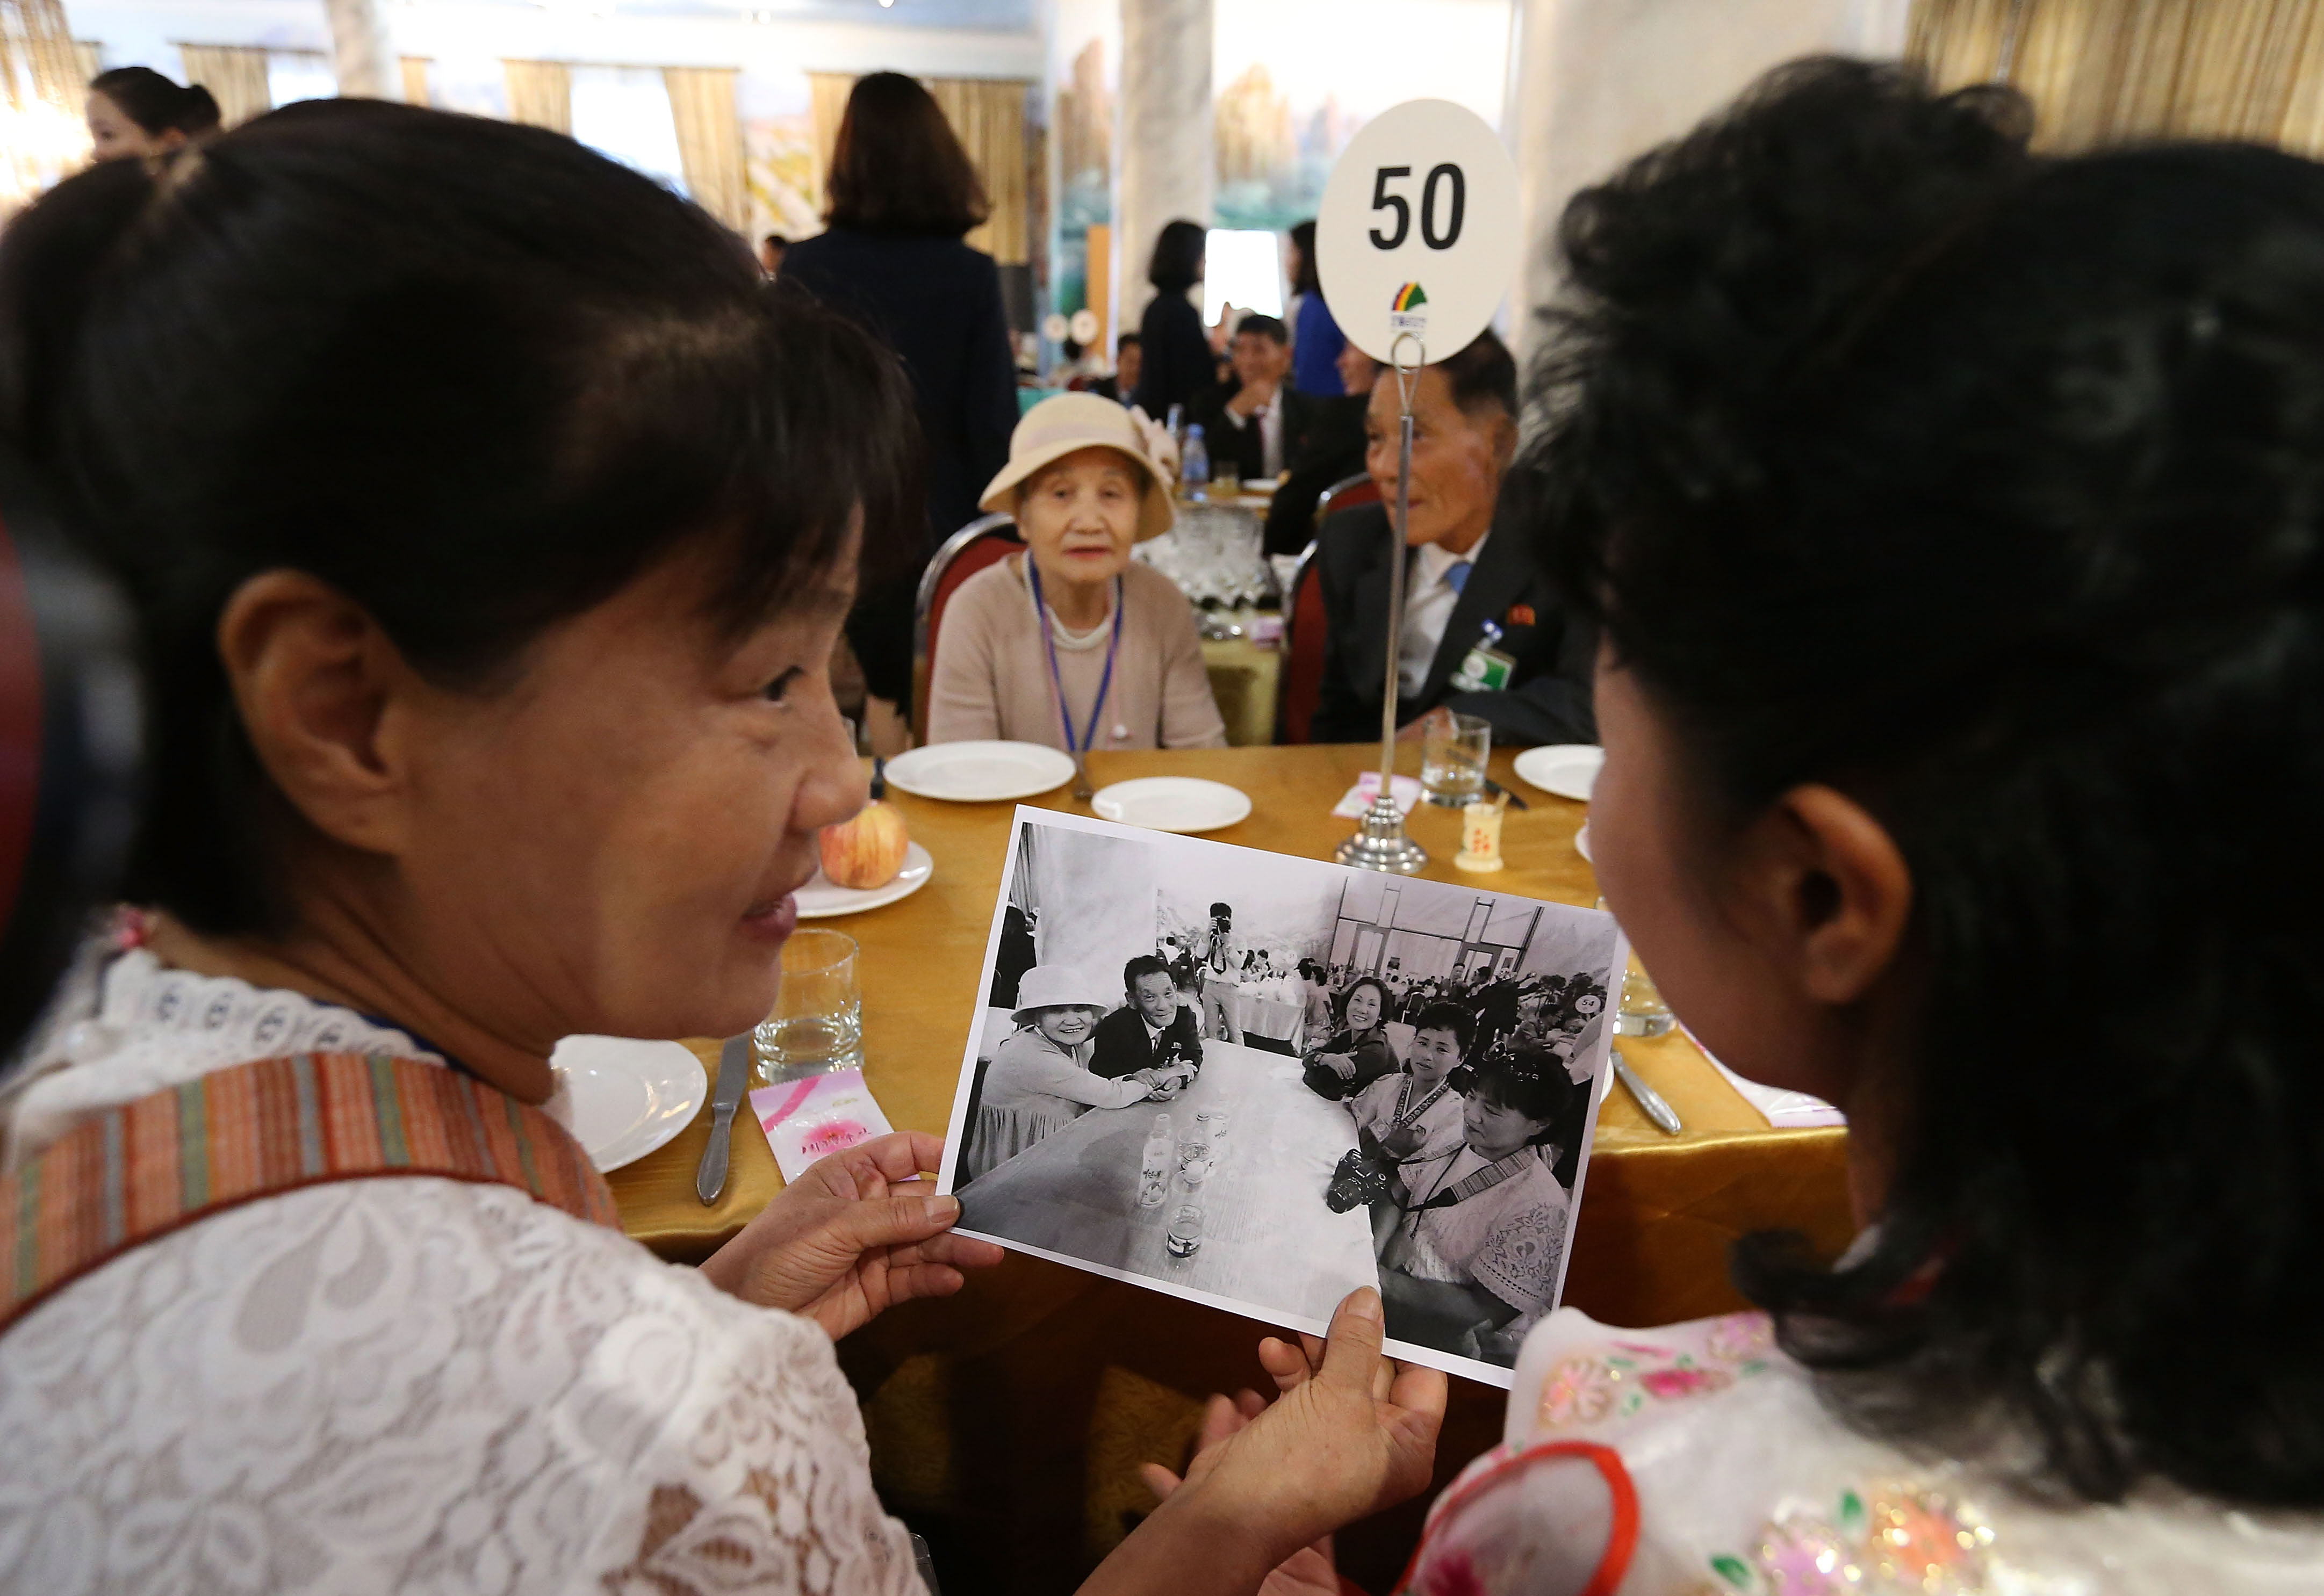 South Korean Lee Geum-Sum, 92, talks with her North Korean son Lee Sung-Chul, 71, at the last meeting of a separated family reunion in Mount Kumgang, North Korea on Aug. 22, 2018.